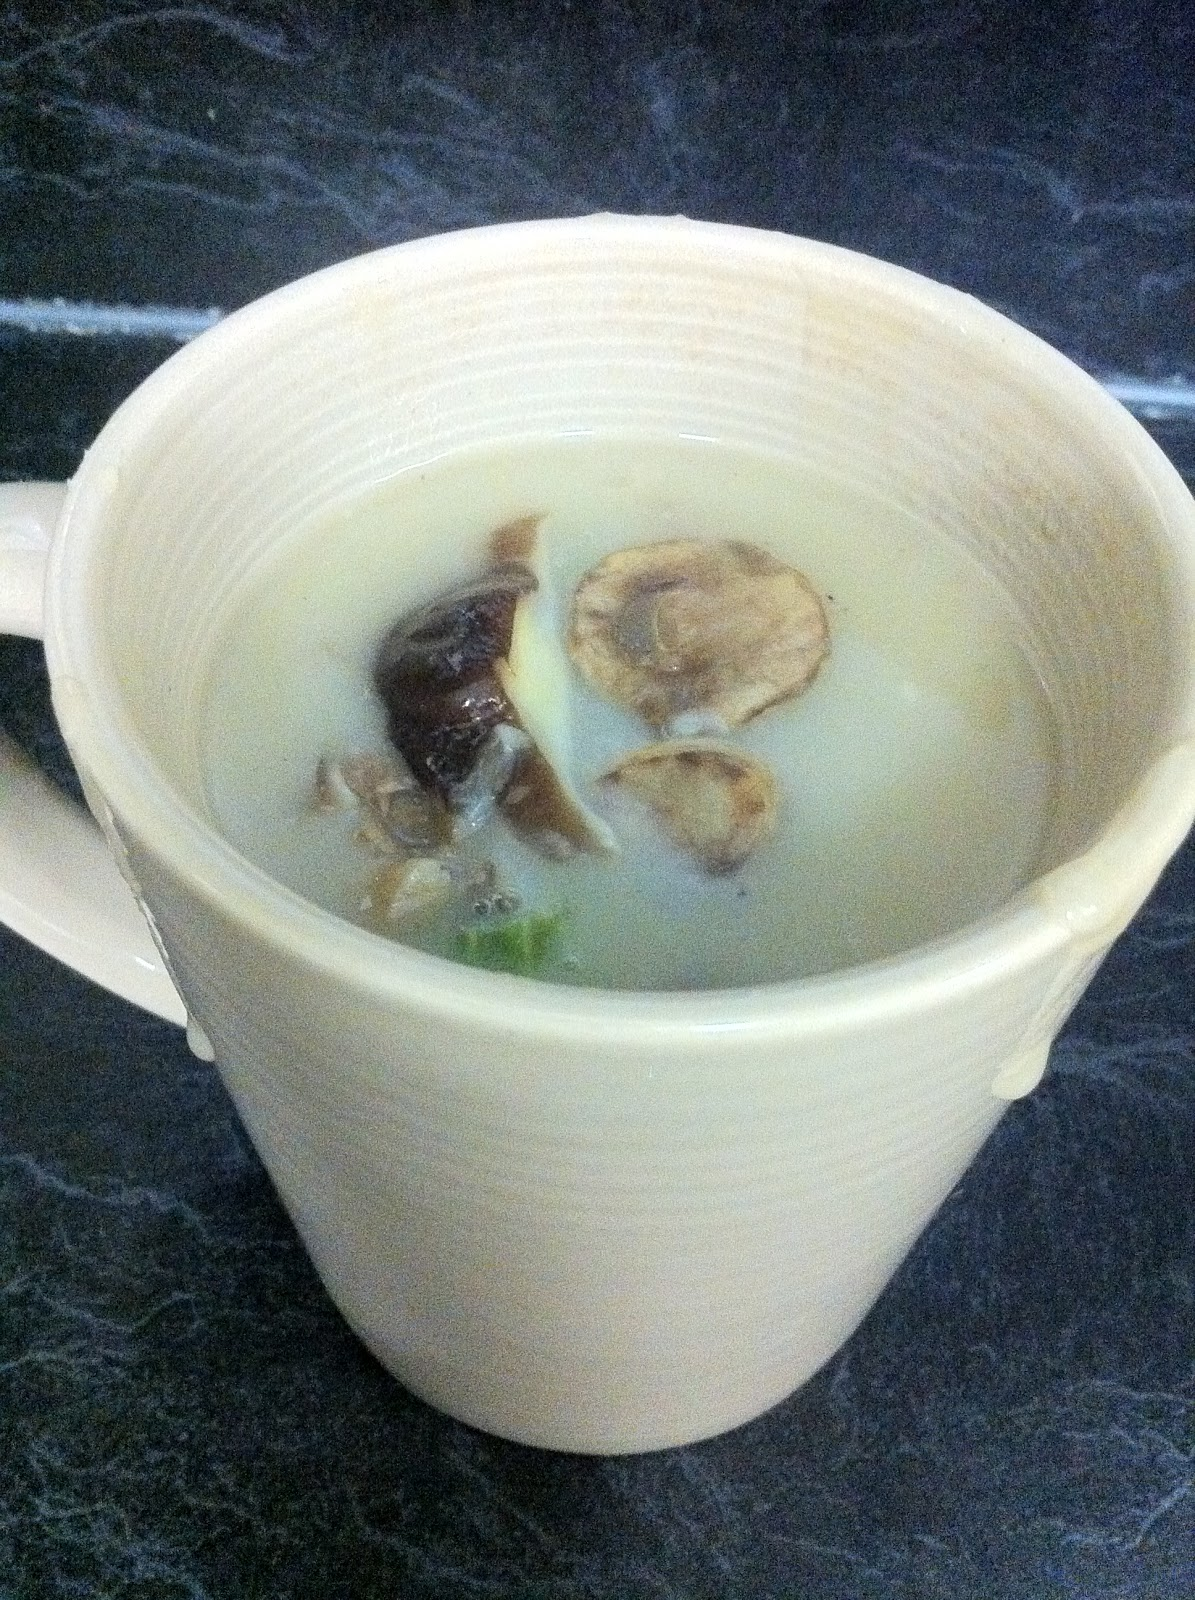 Skinny Healthy Lifestyle: Low fat cream of mushroom soup